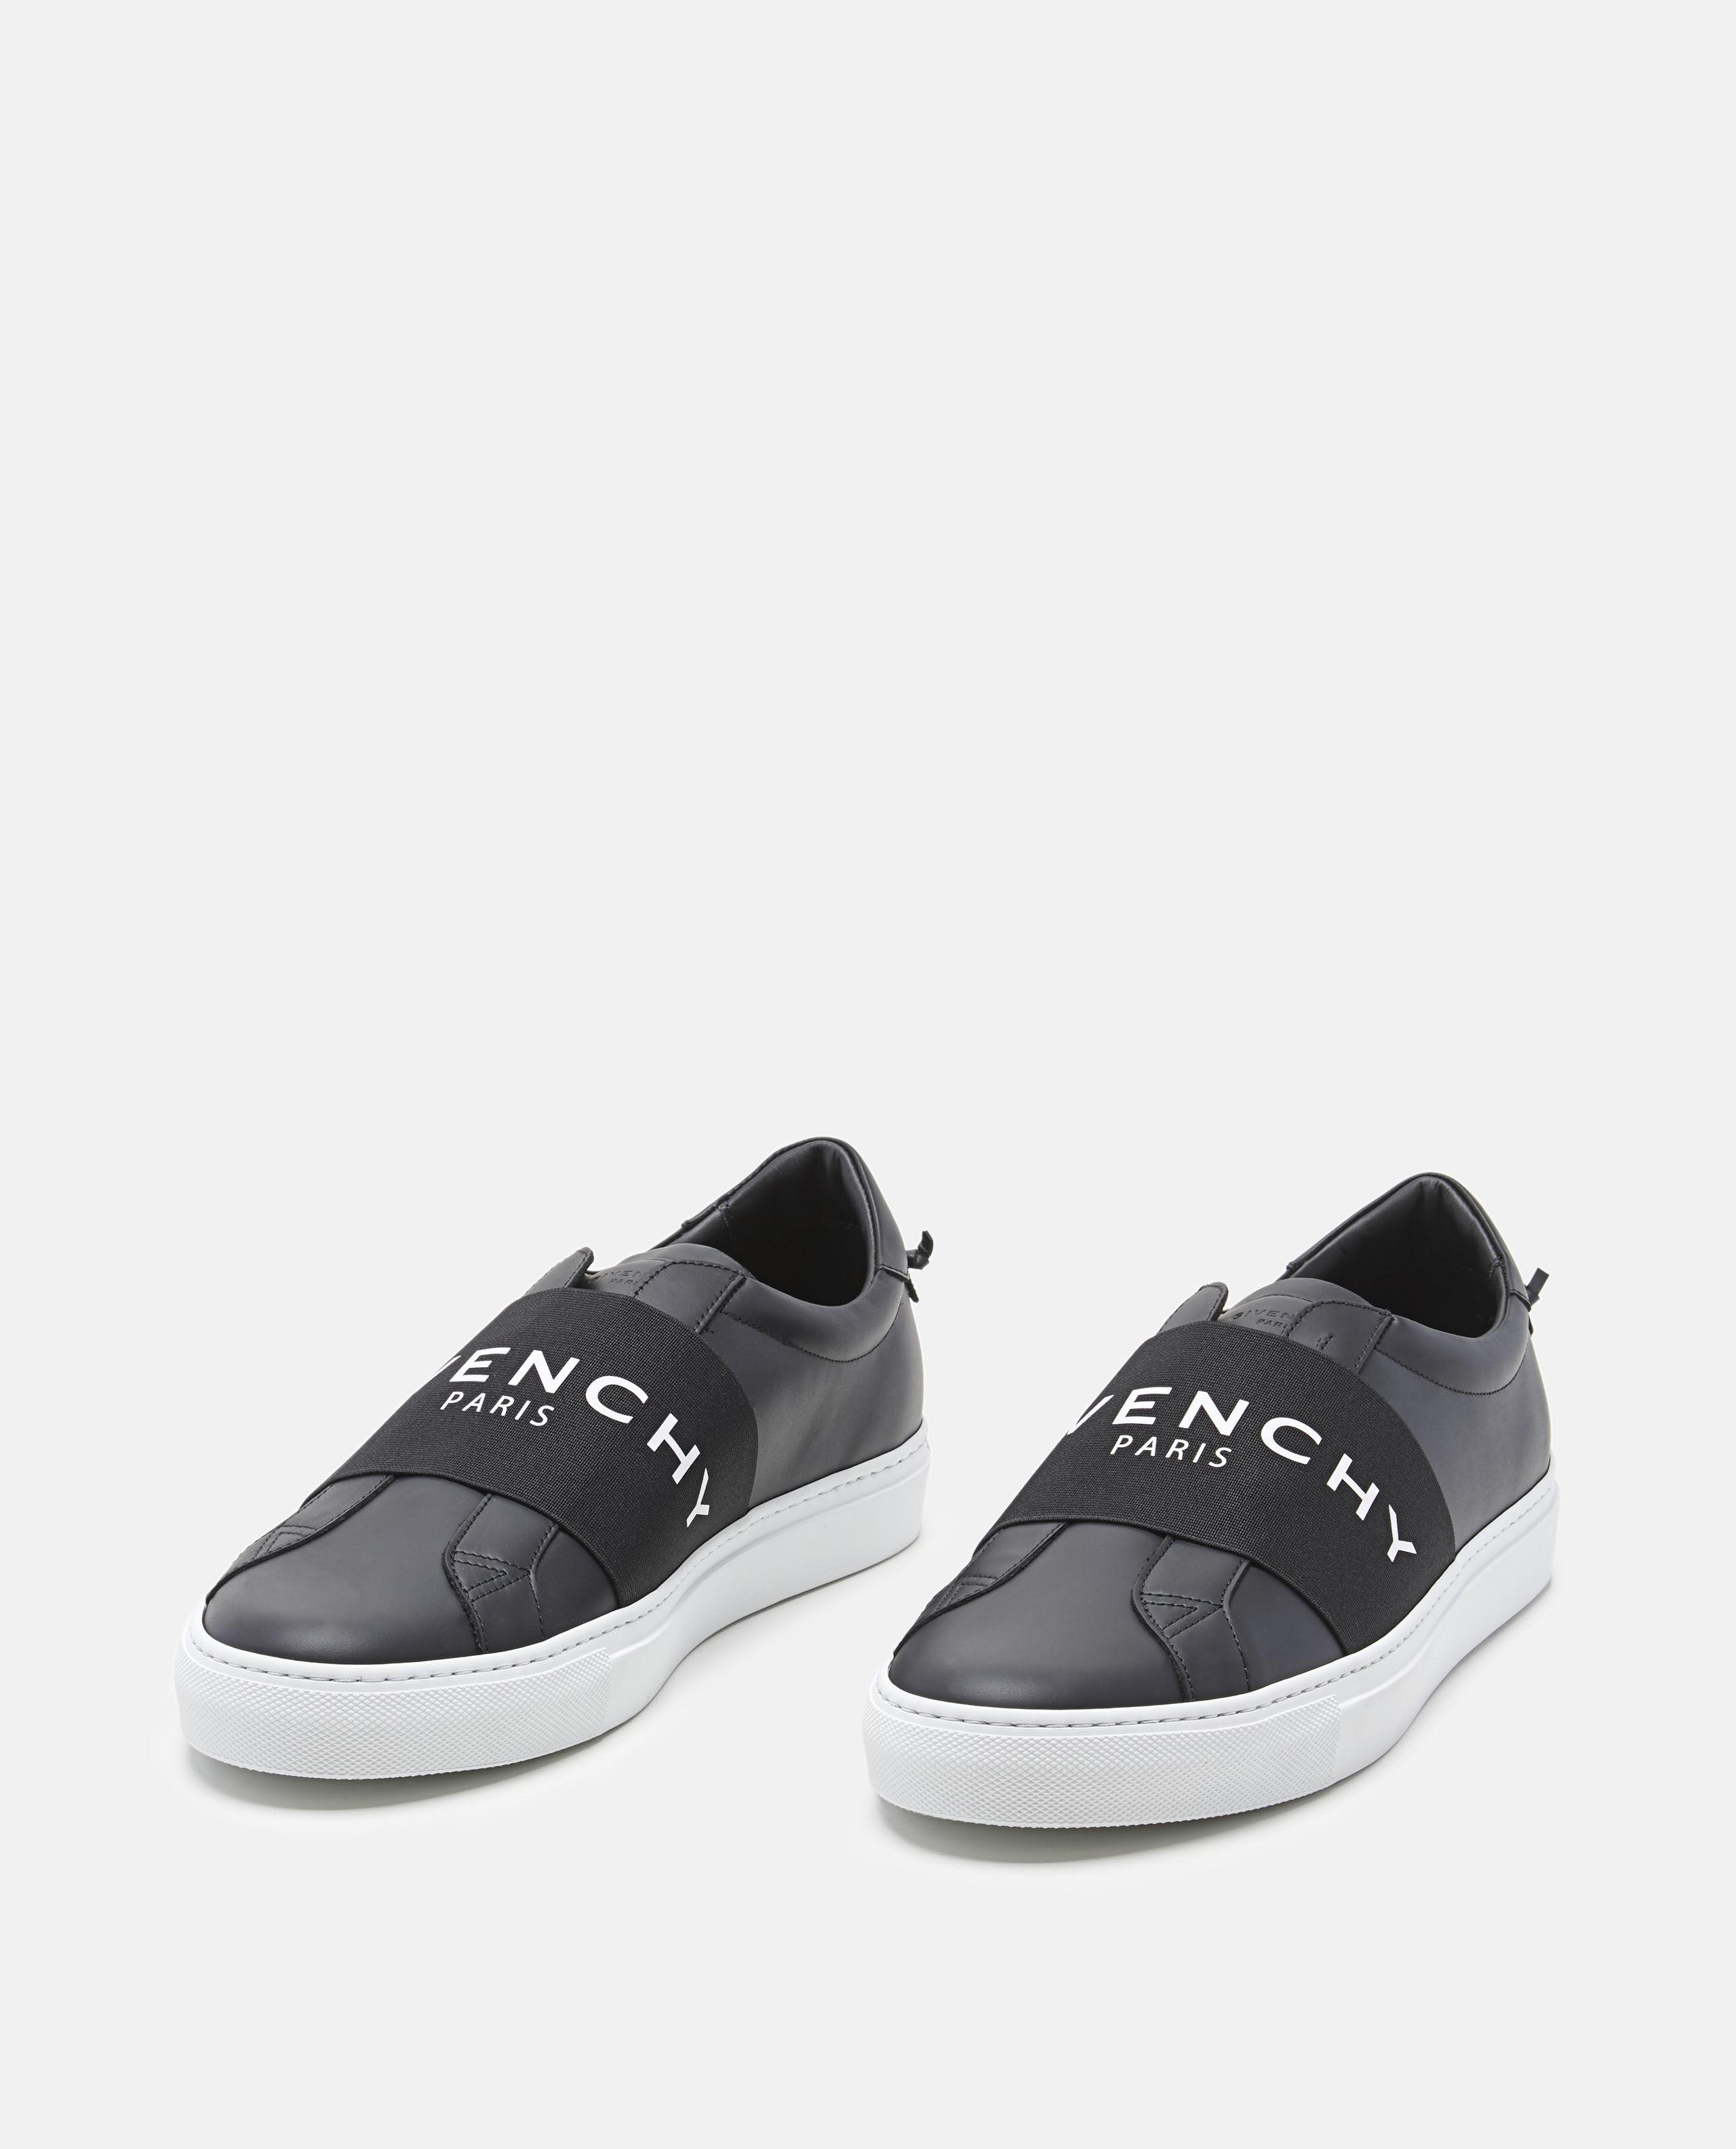 0bae9c794f3e Lyst - Givenchy Paris Elastic Band Sneaker in Black for Men